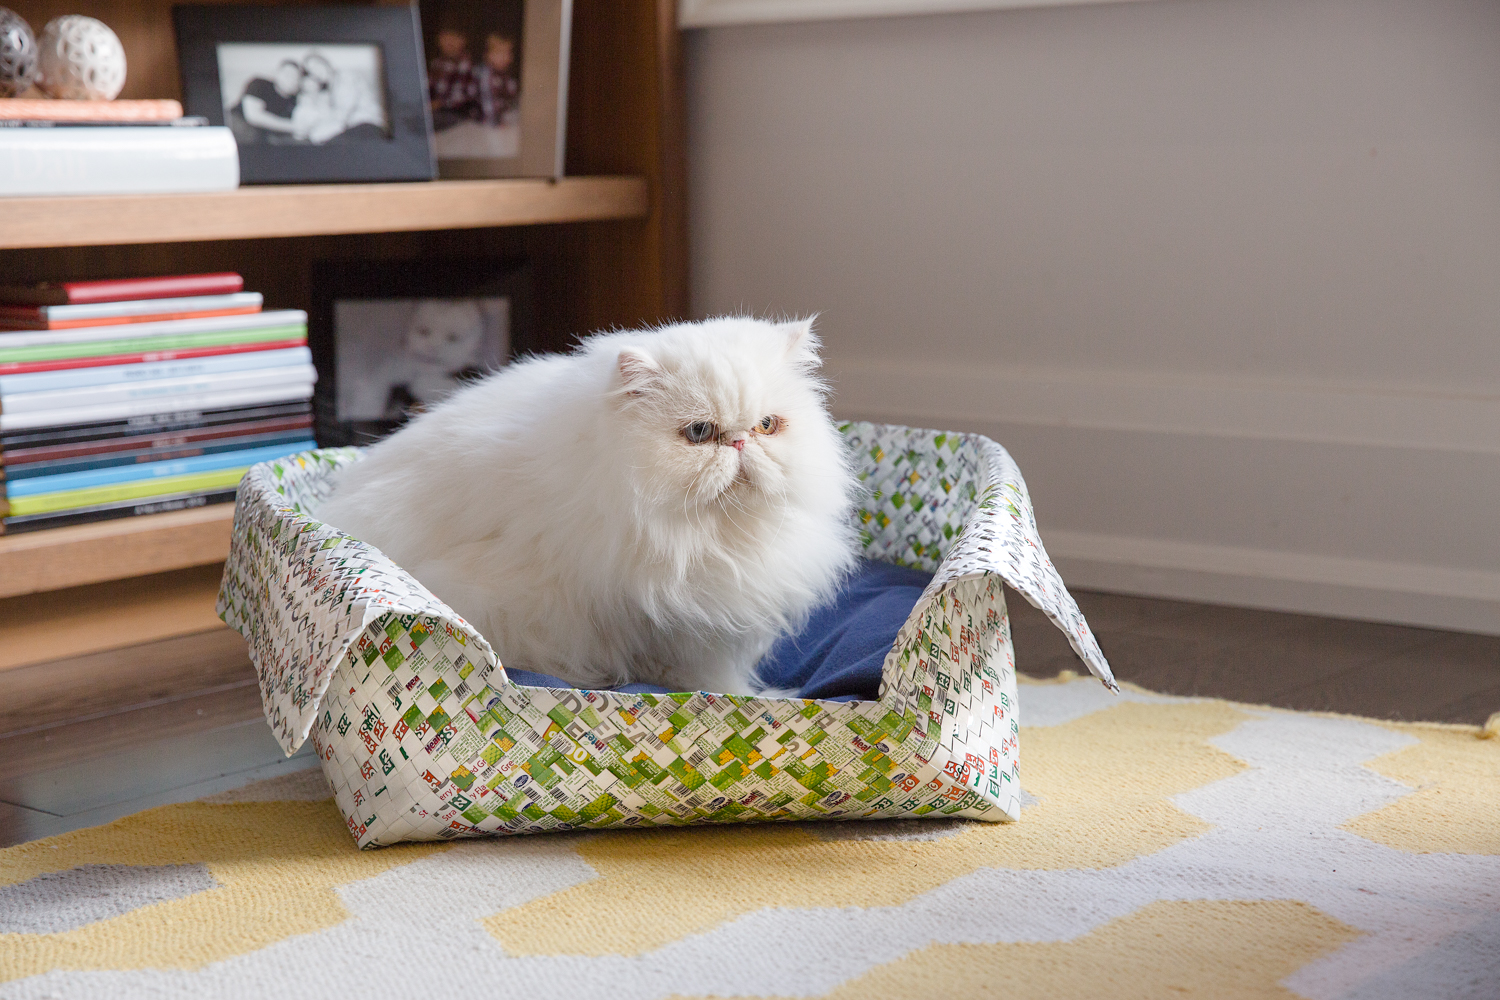 White cat lies in a pet bed